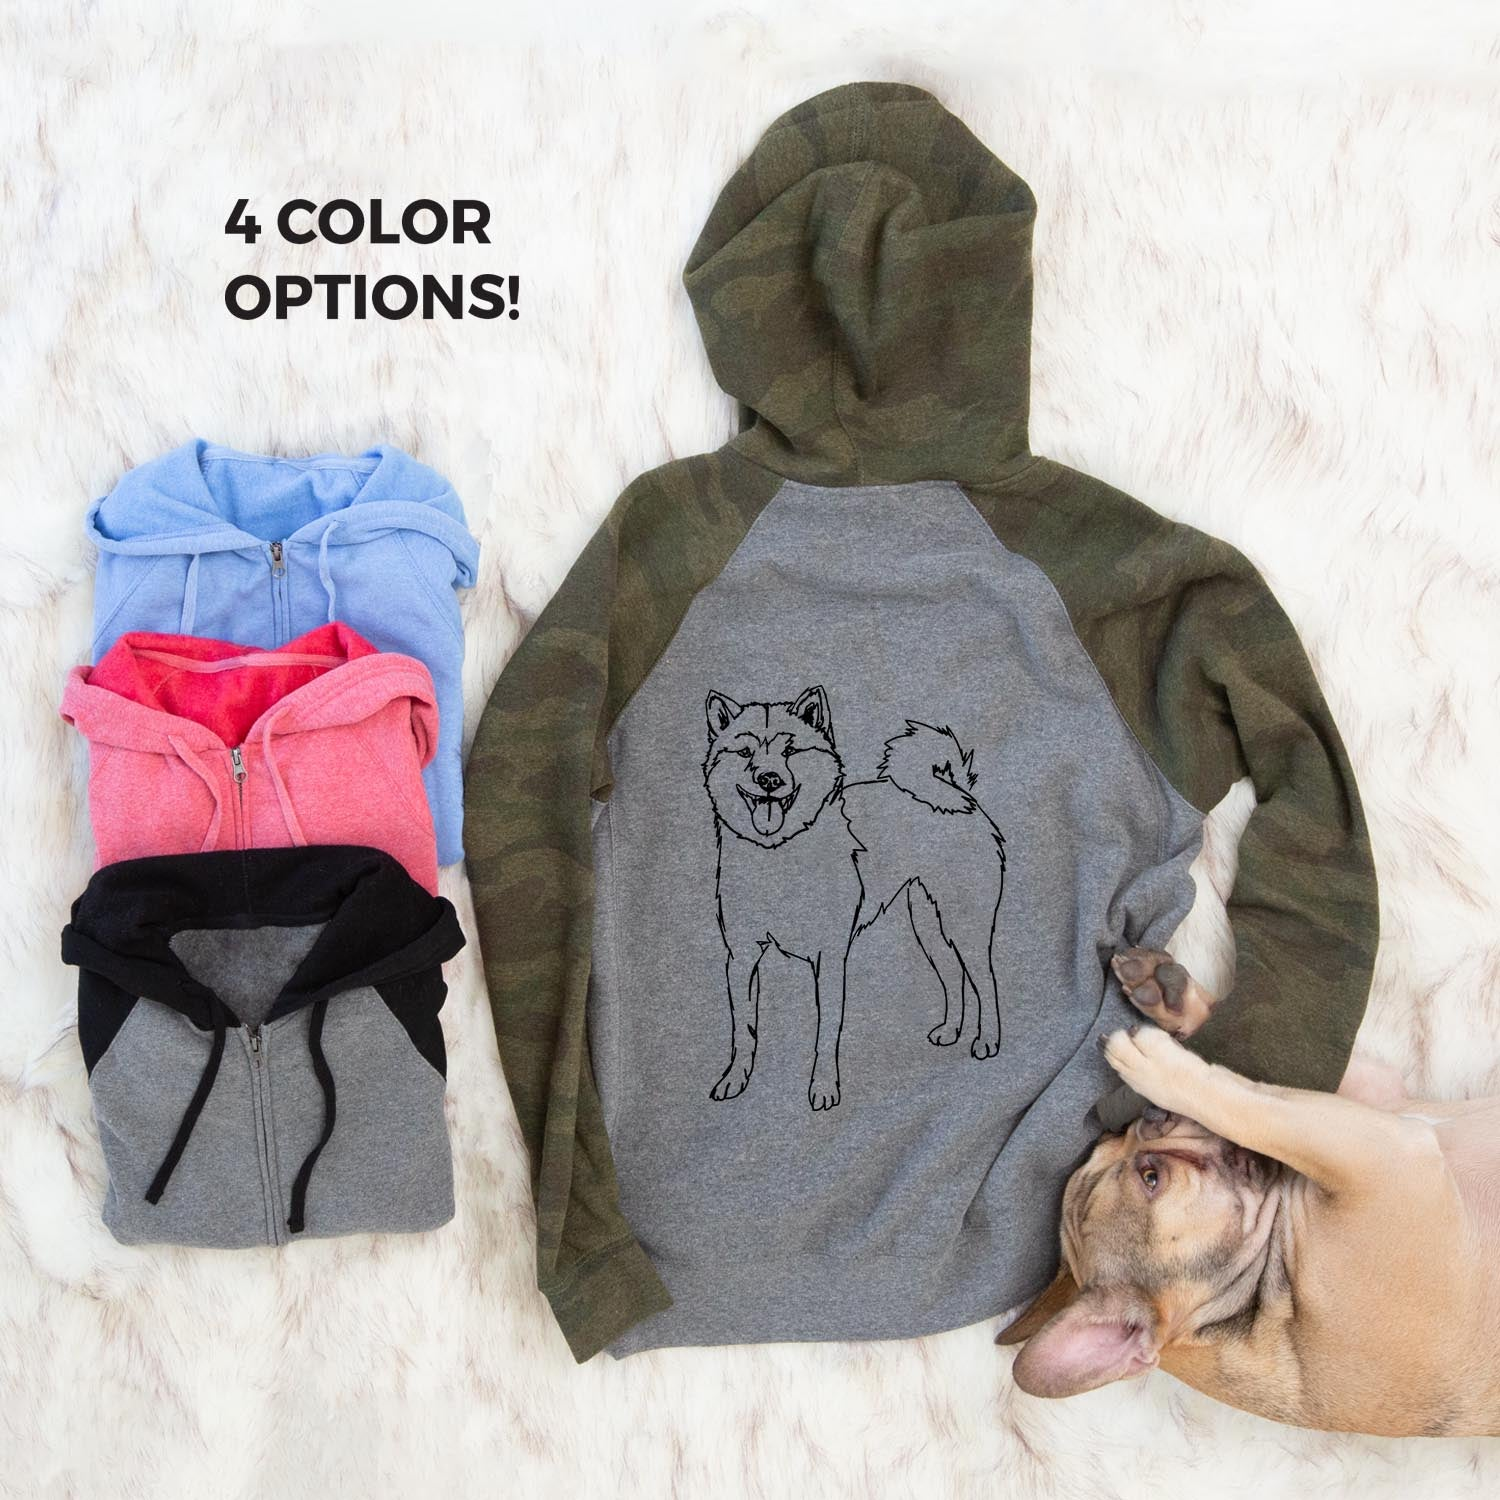 Doodled Rin the Shiba Inu - Unisex Raglan Zip Up Hoodie